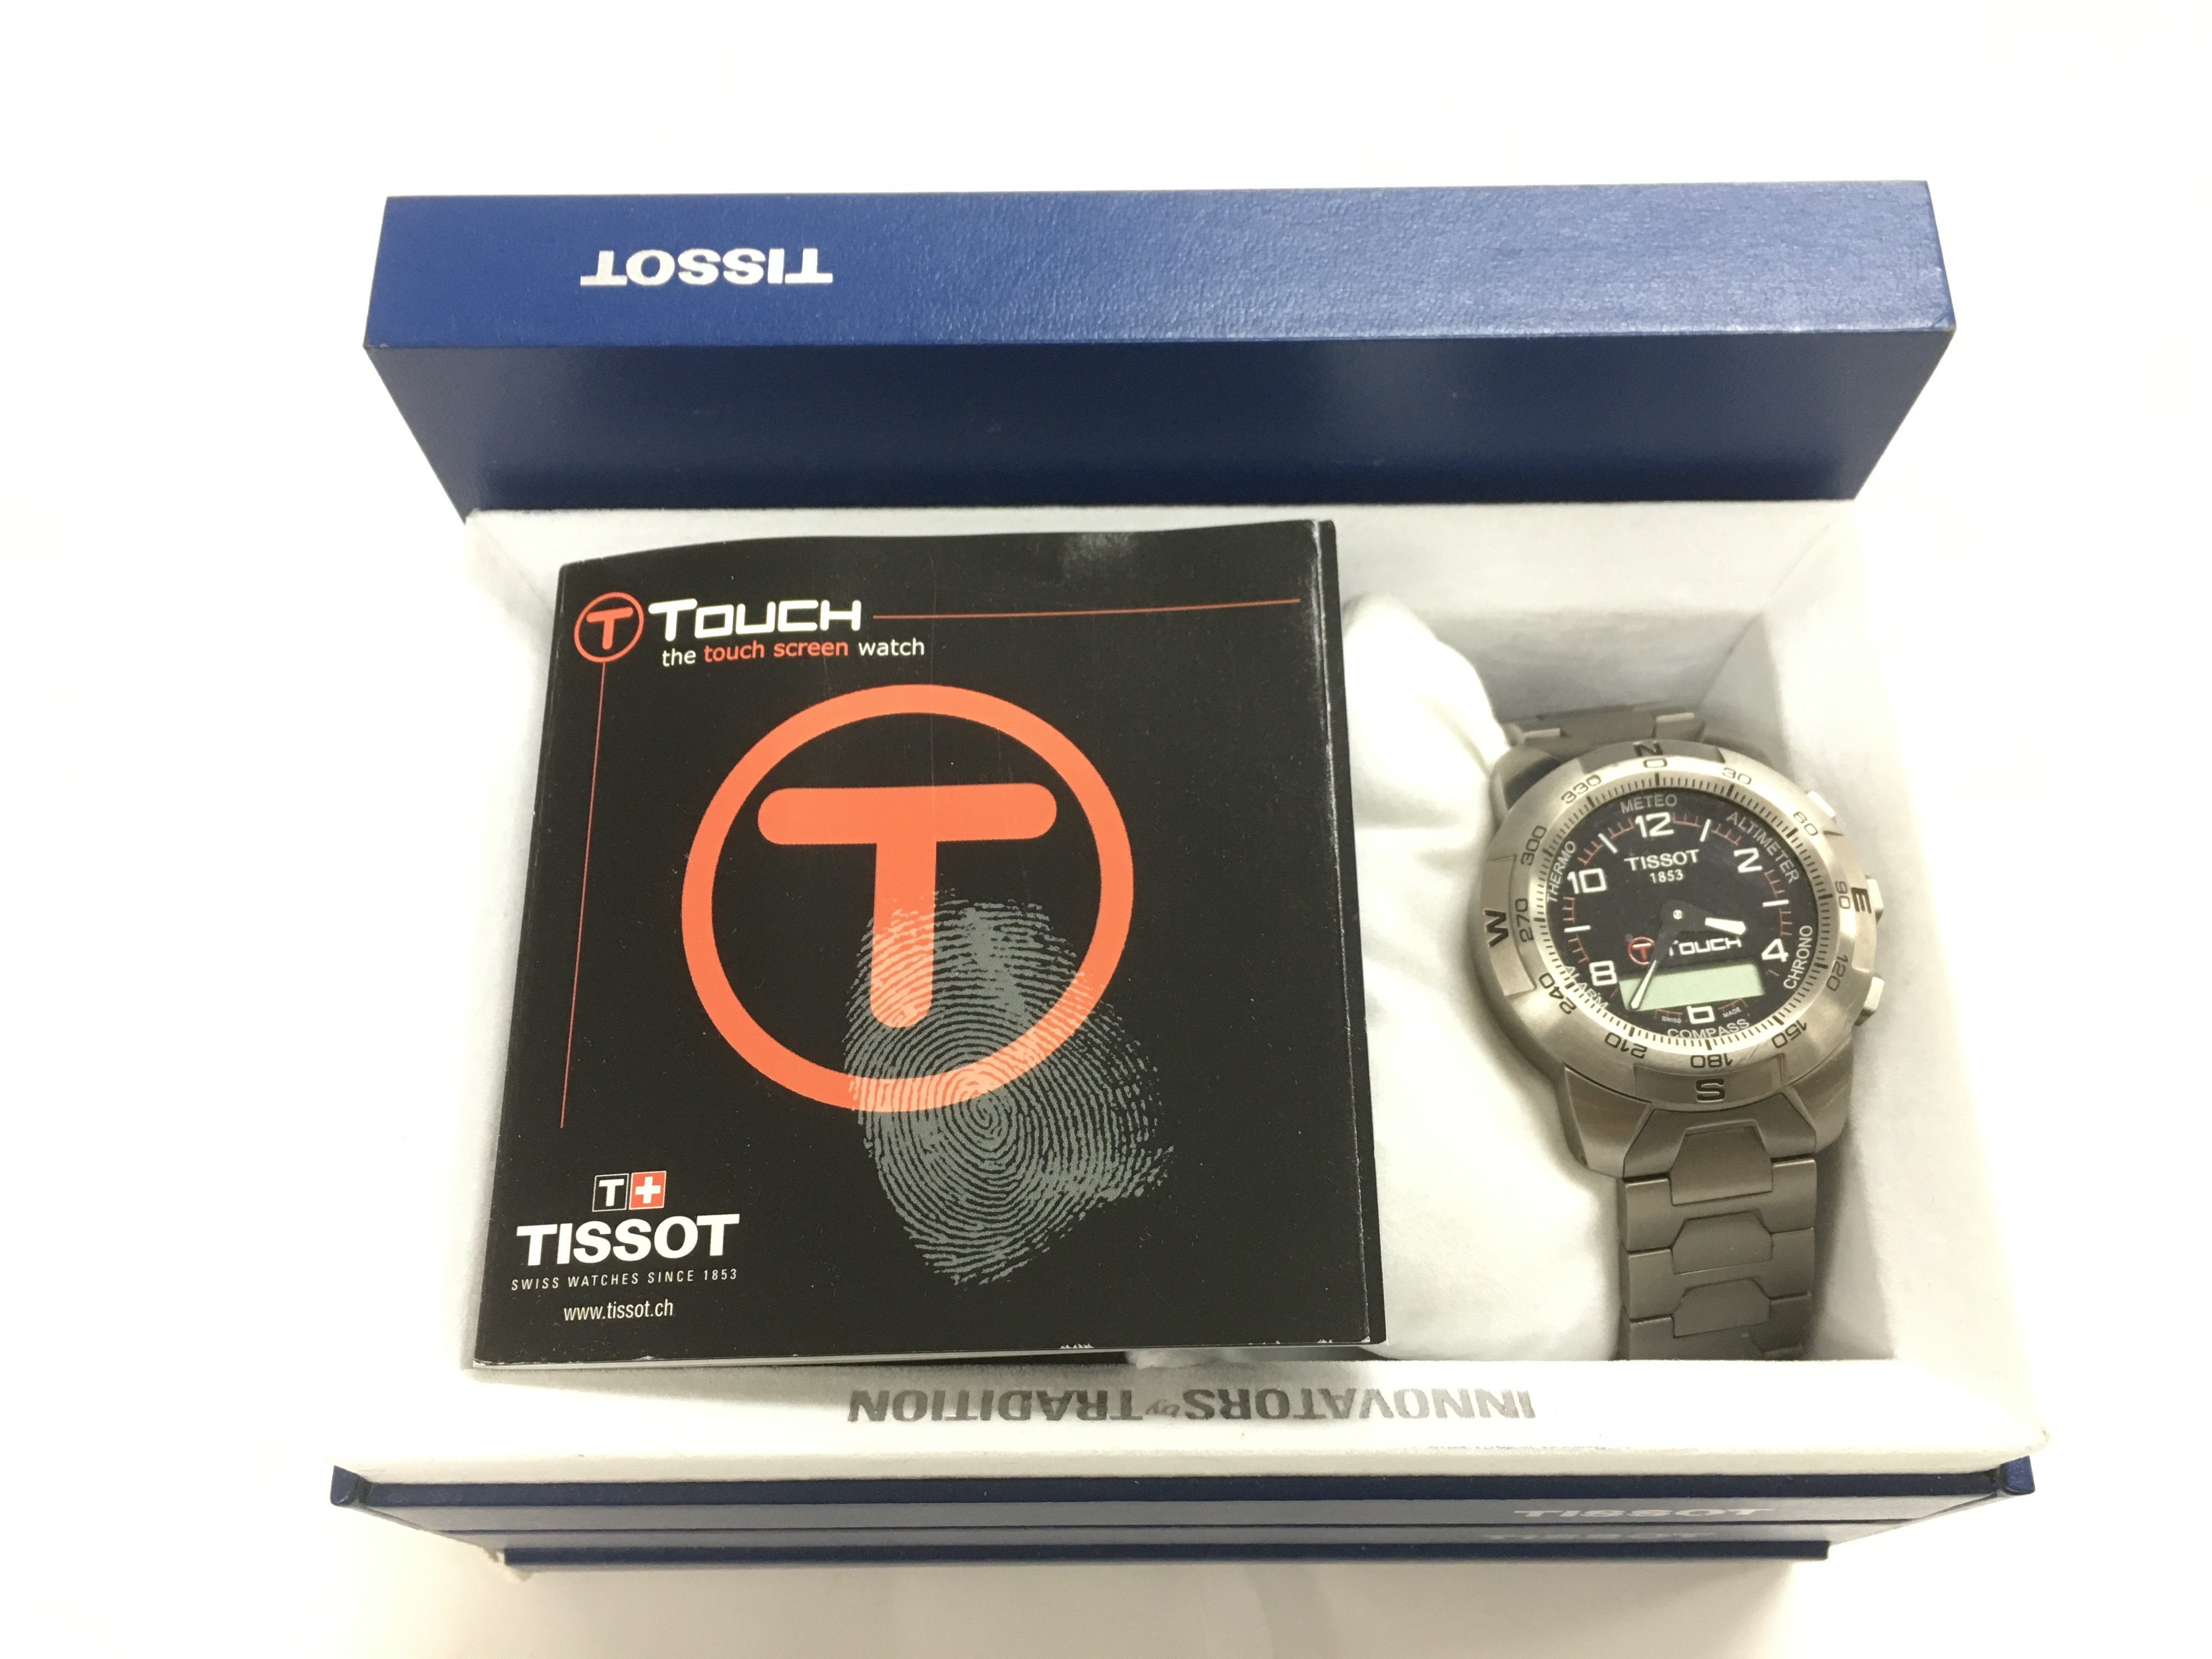 Lot 48 - A boxed Tissot Touch watch.